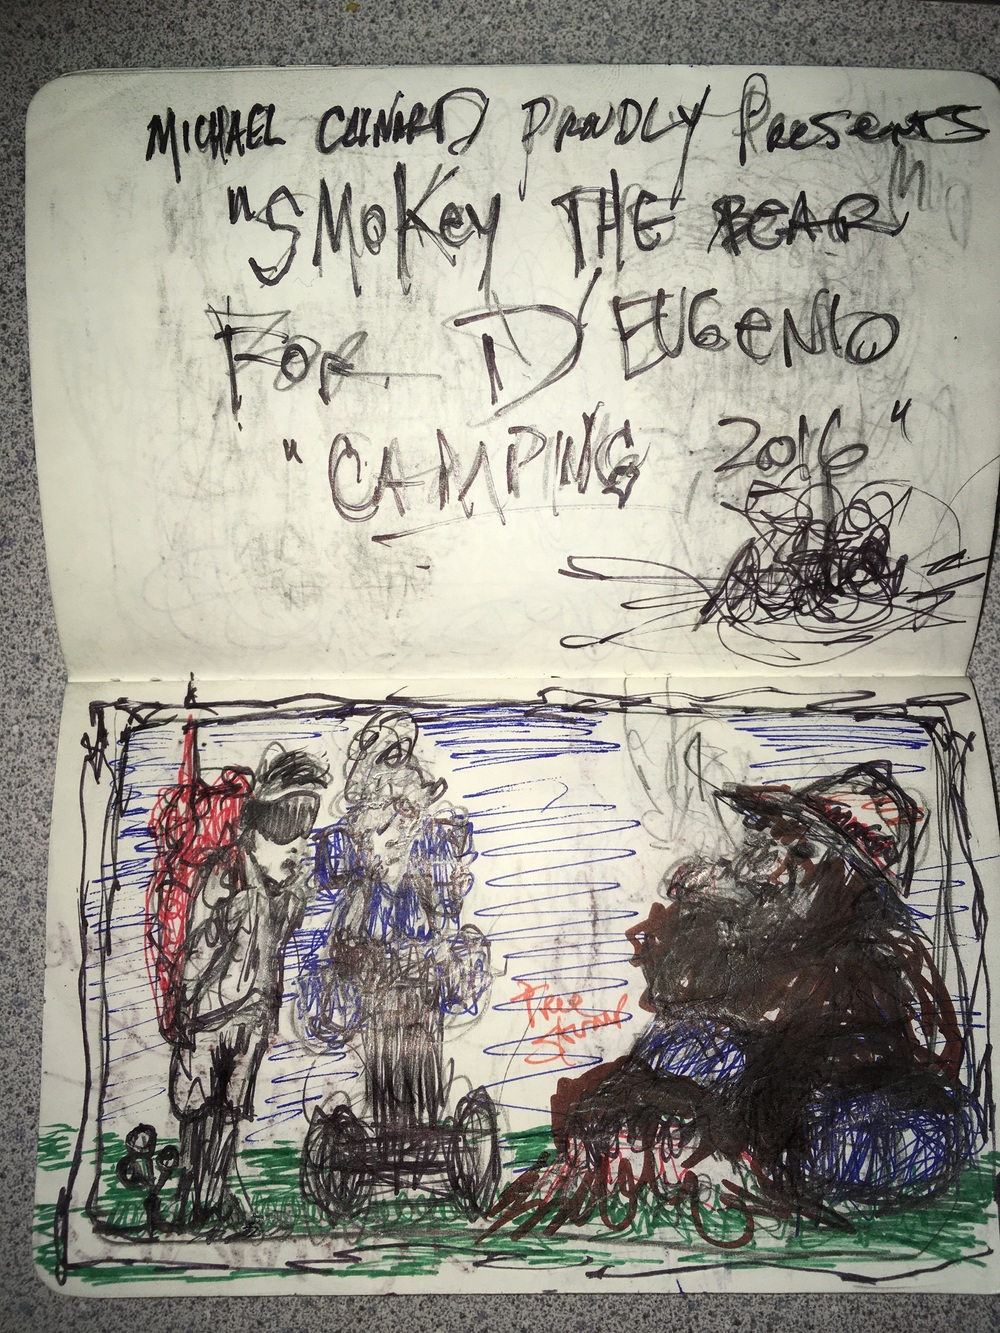 Oculus Bro and Segway Gal observe Smokey the Bear with Fire, 2016. Sketch by Michael Clinard.